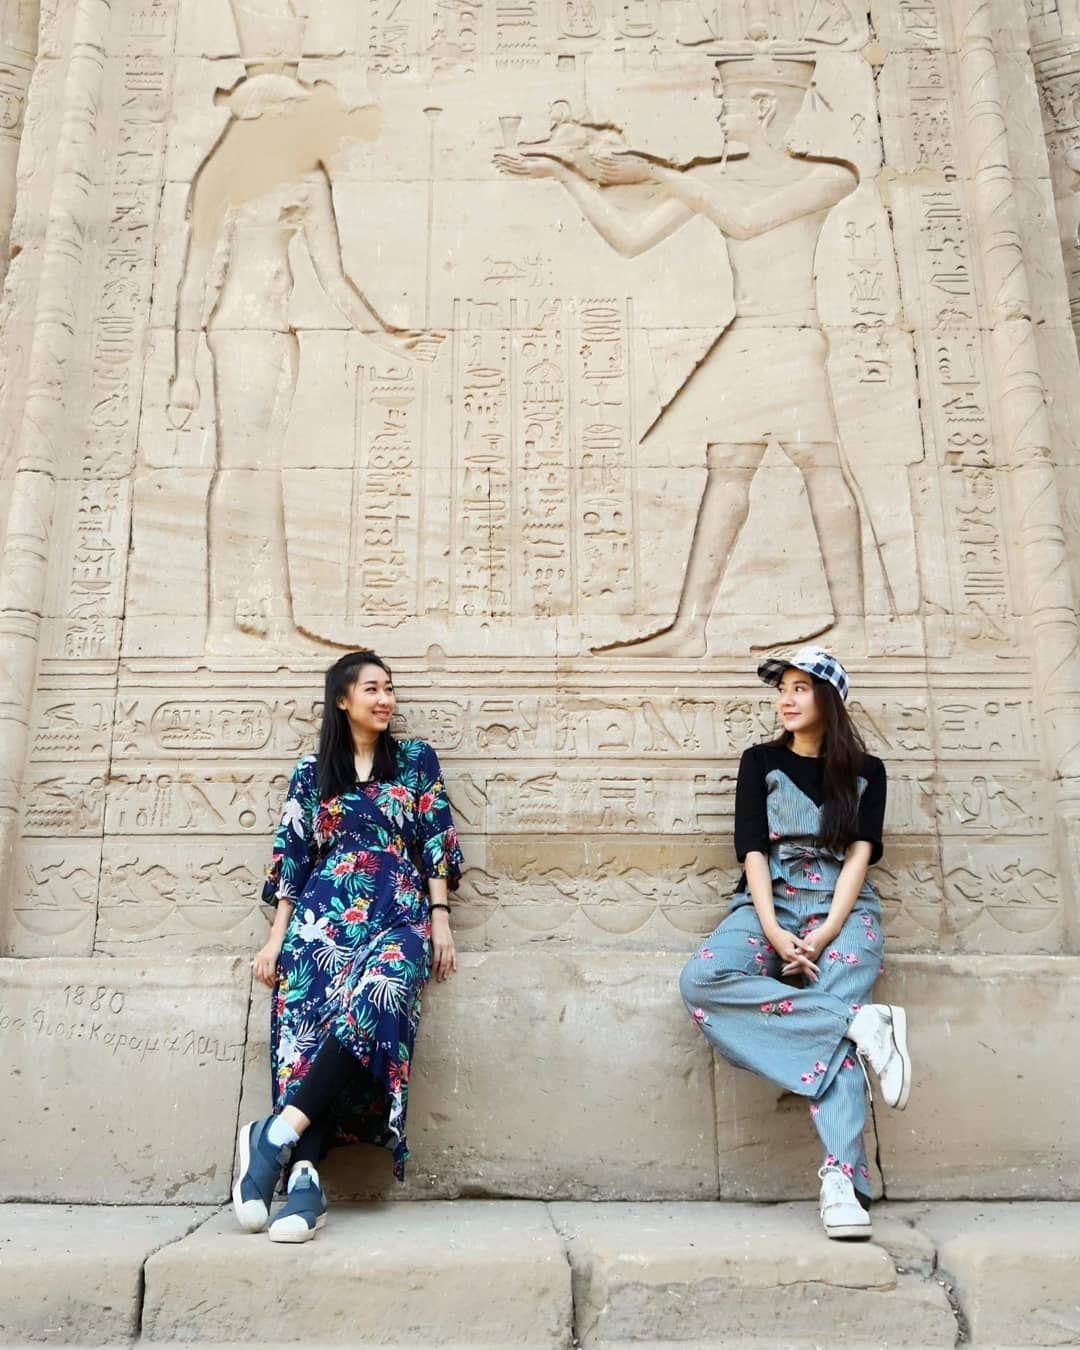 Egypt Tour Packages from Saudi Arabia in 2019 | Egypt Trip